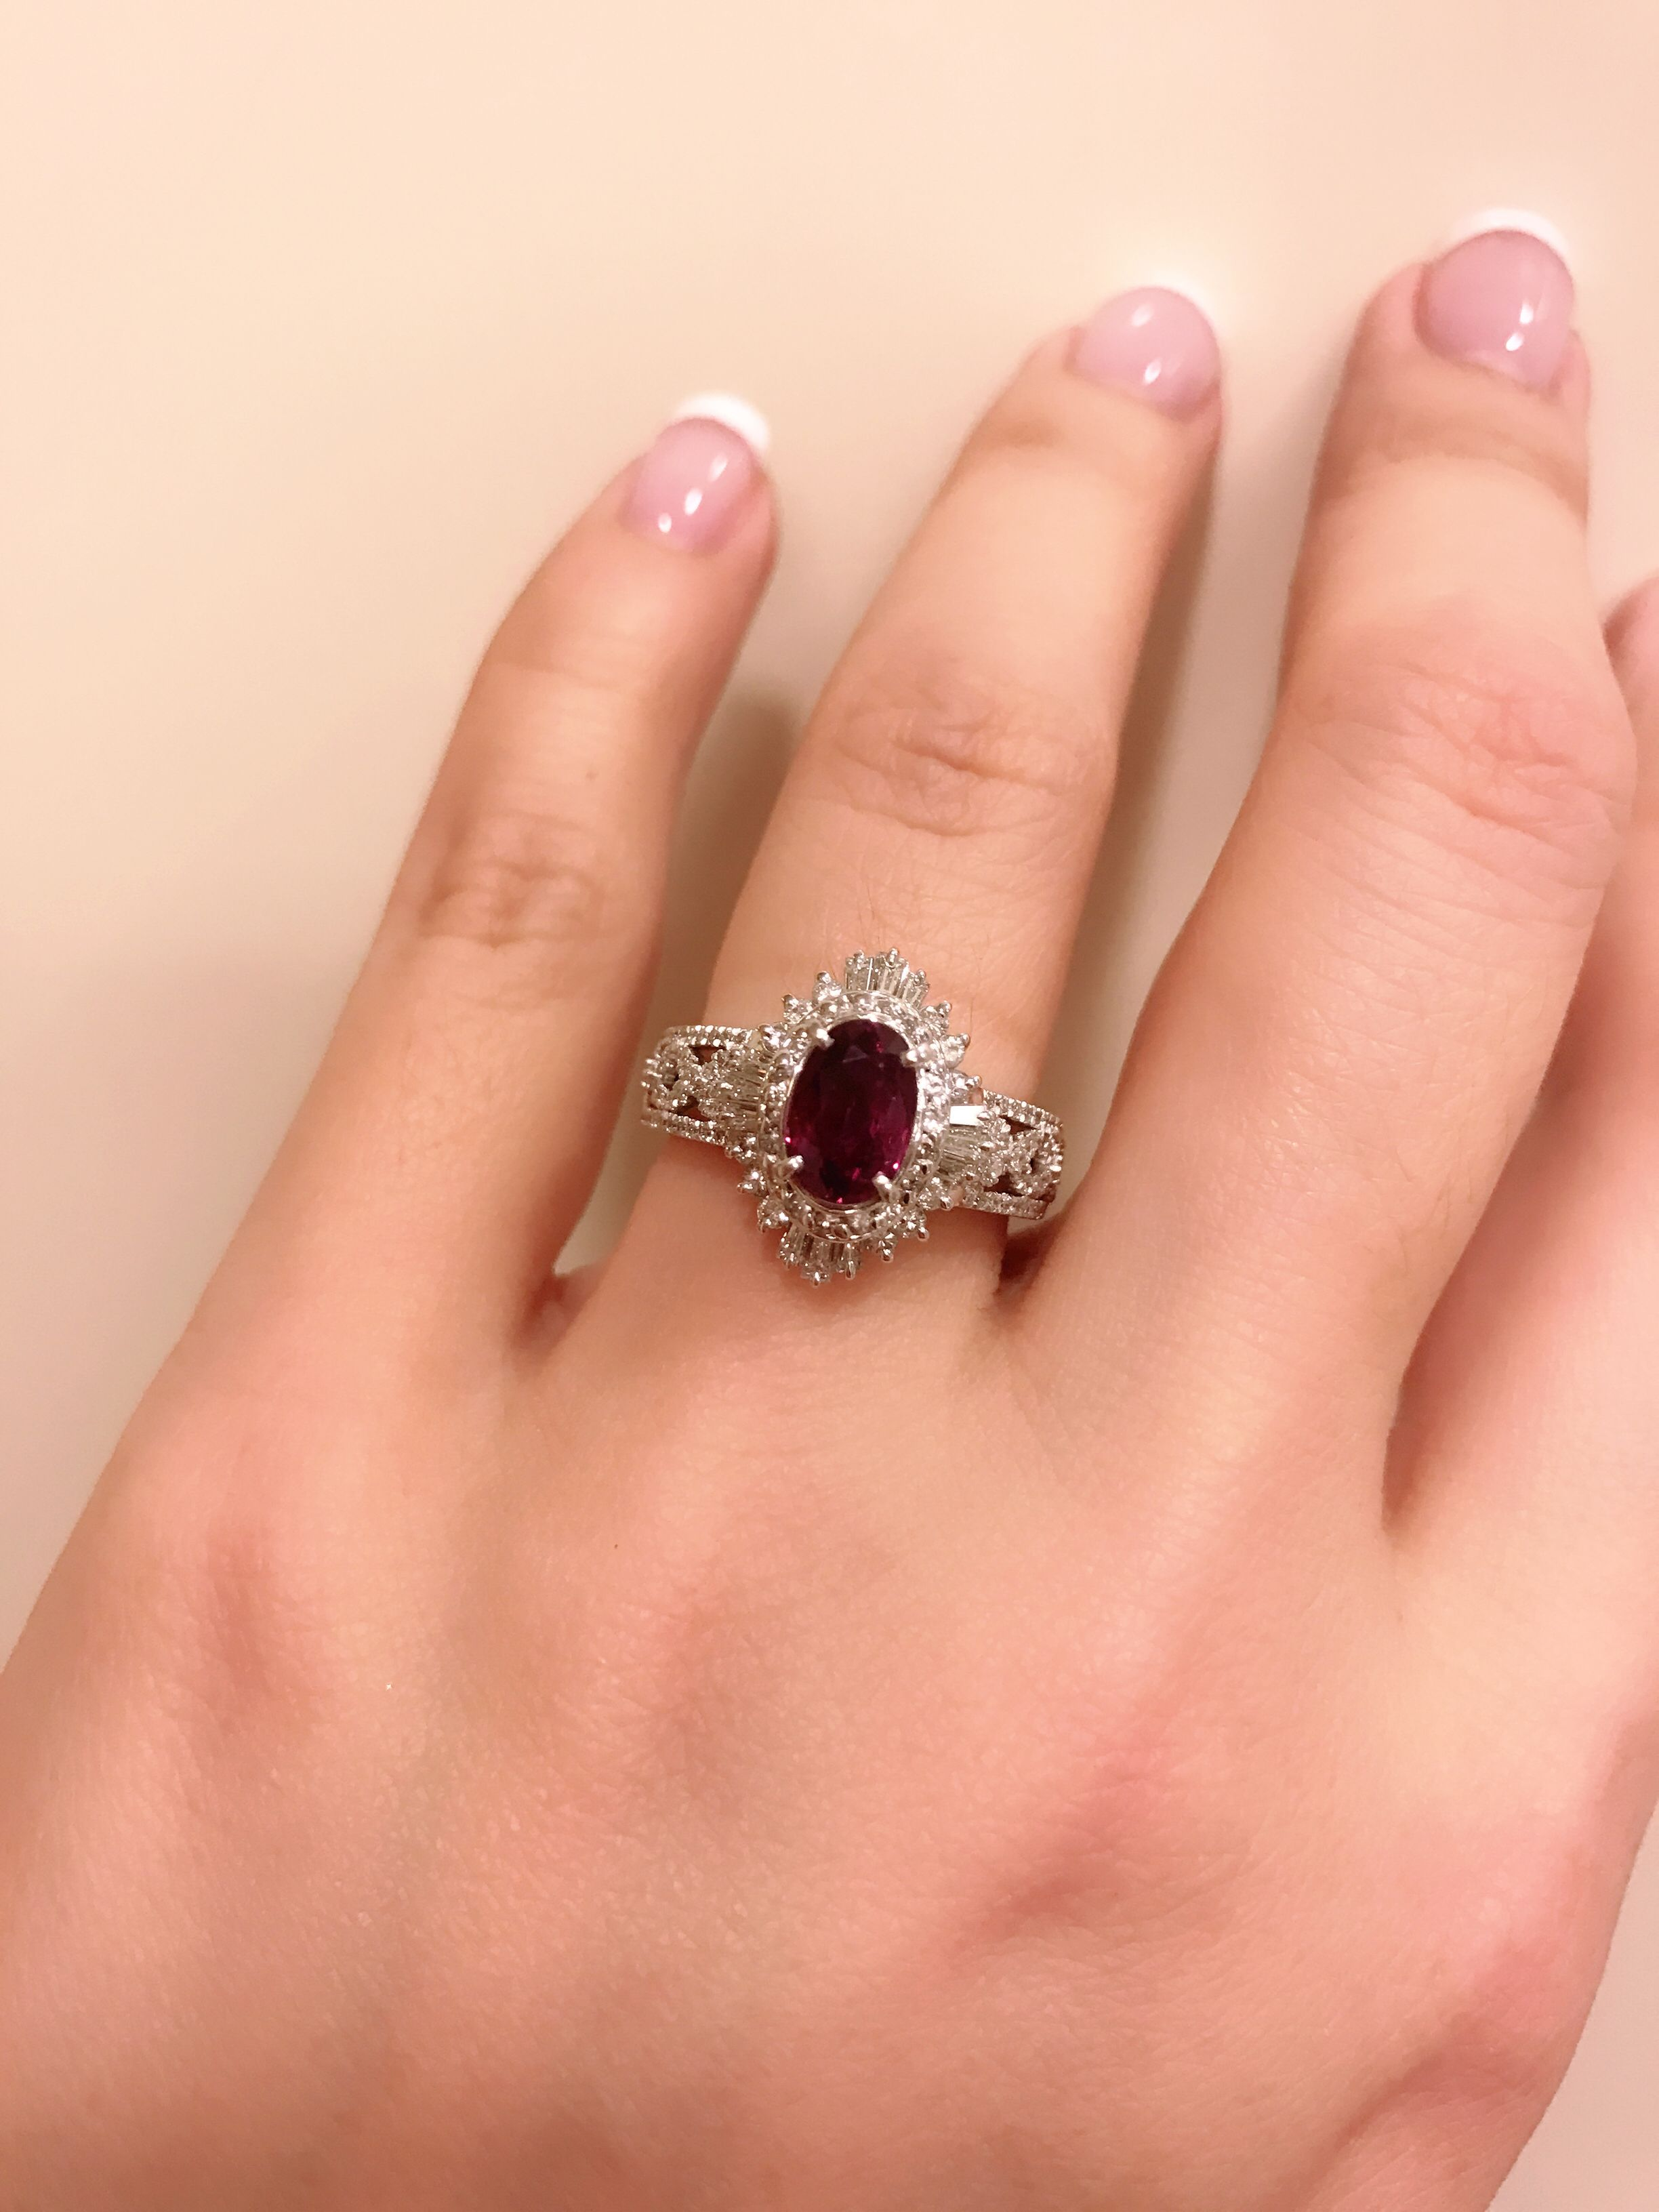 today natural glass engagement rings ruby stores gems red selling alert news major with filled